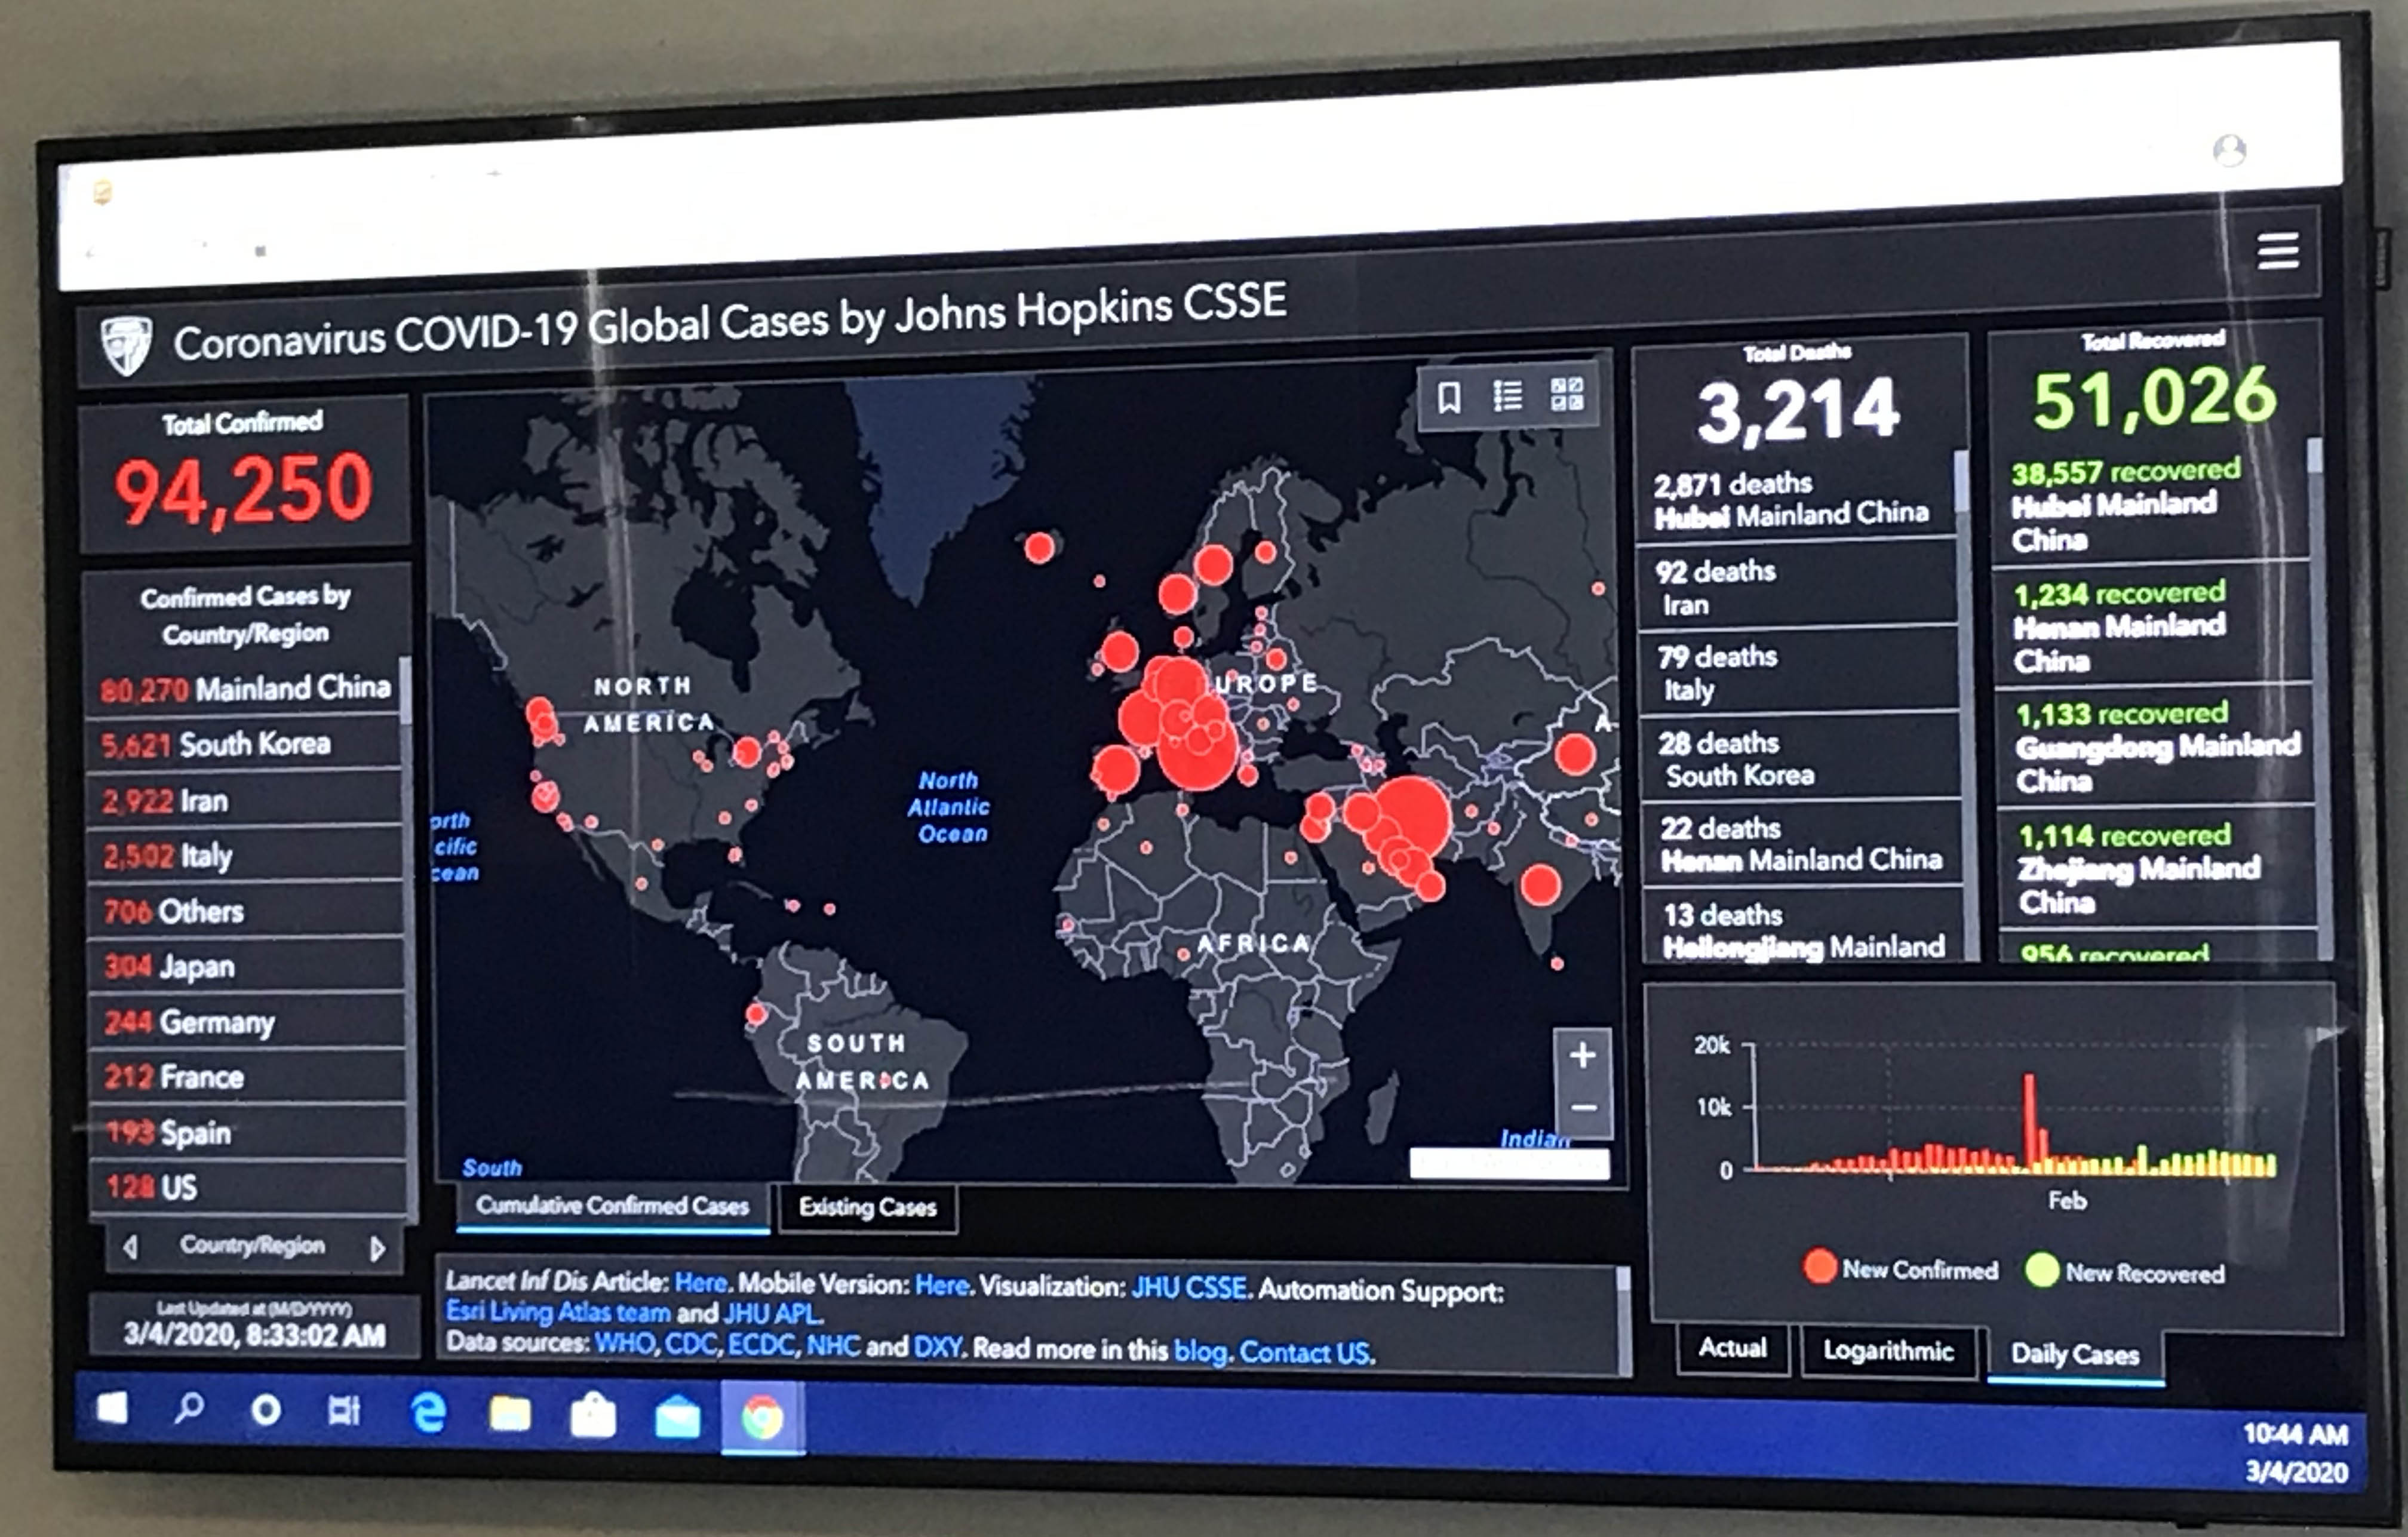 Johns Hopkins site on screen in Emergency Operations Center